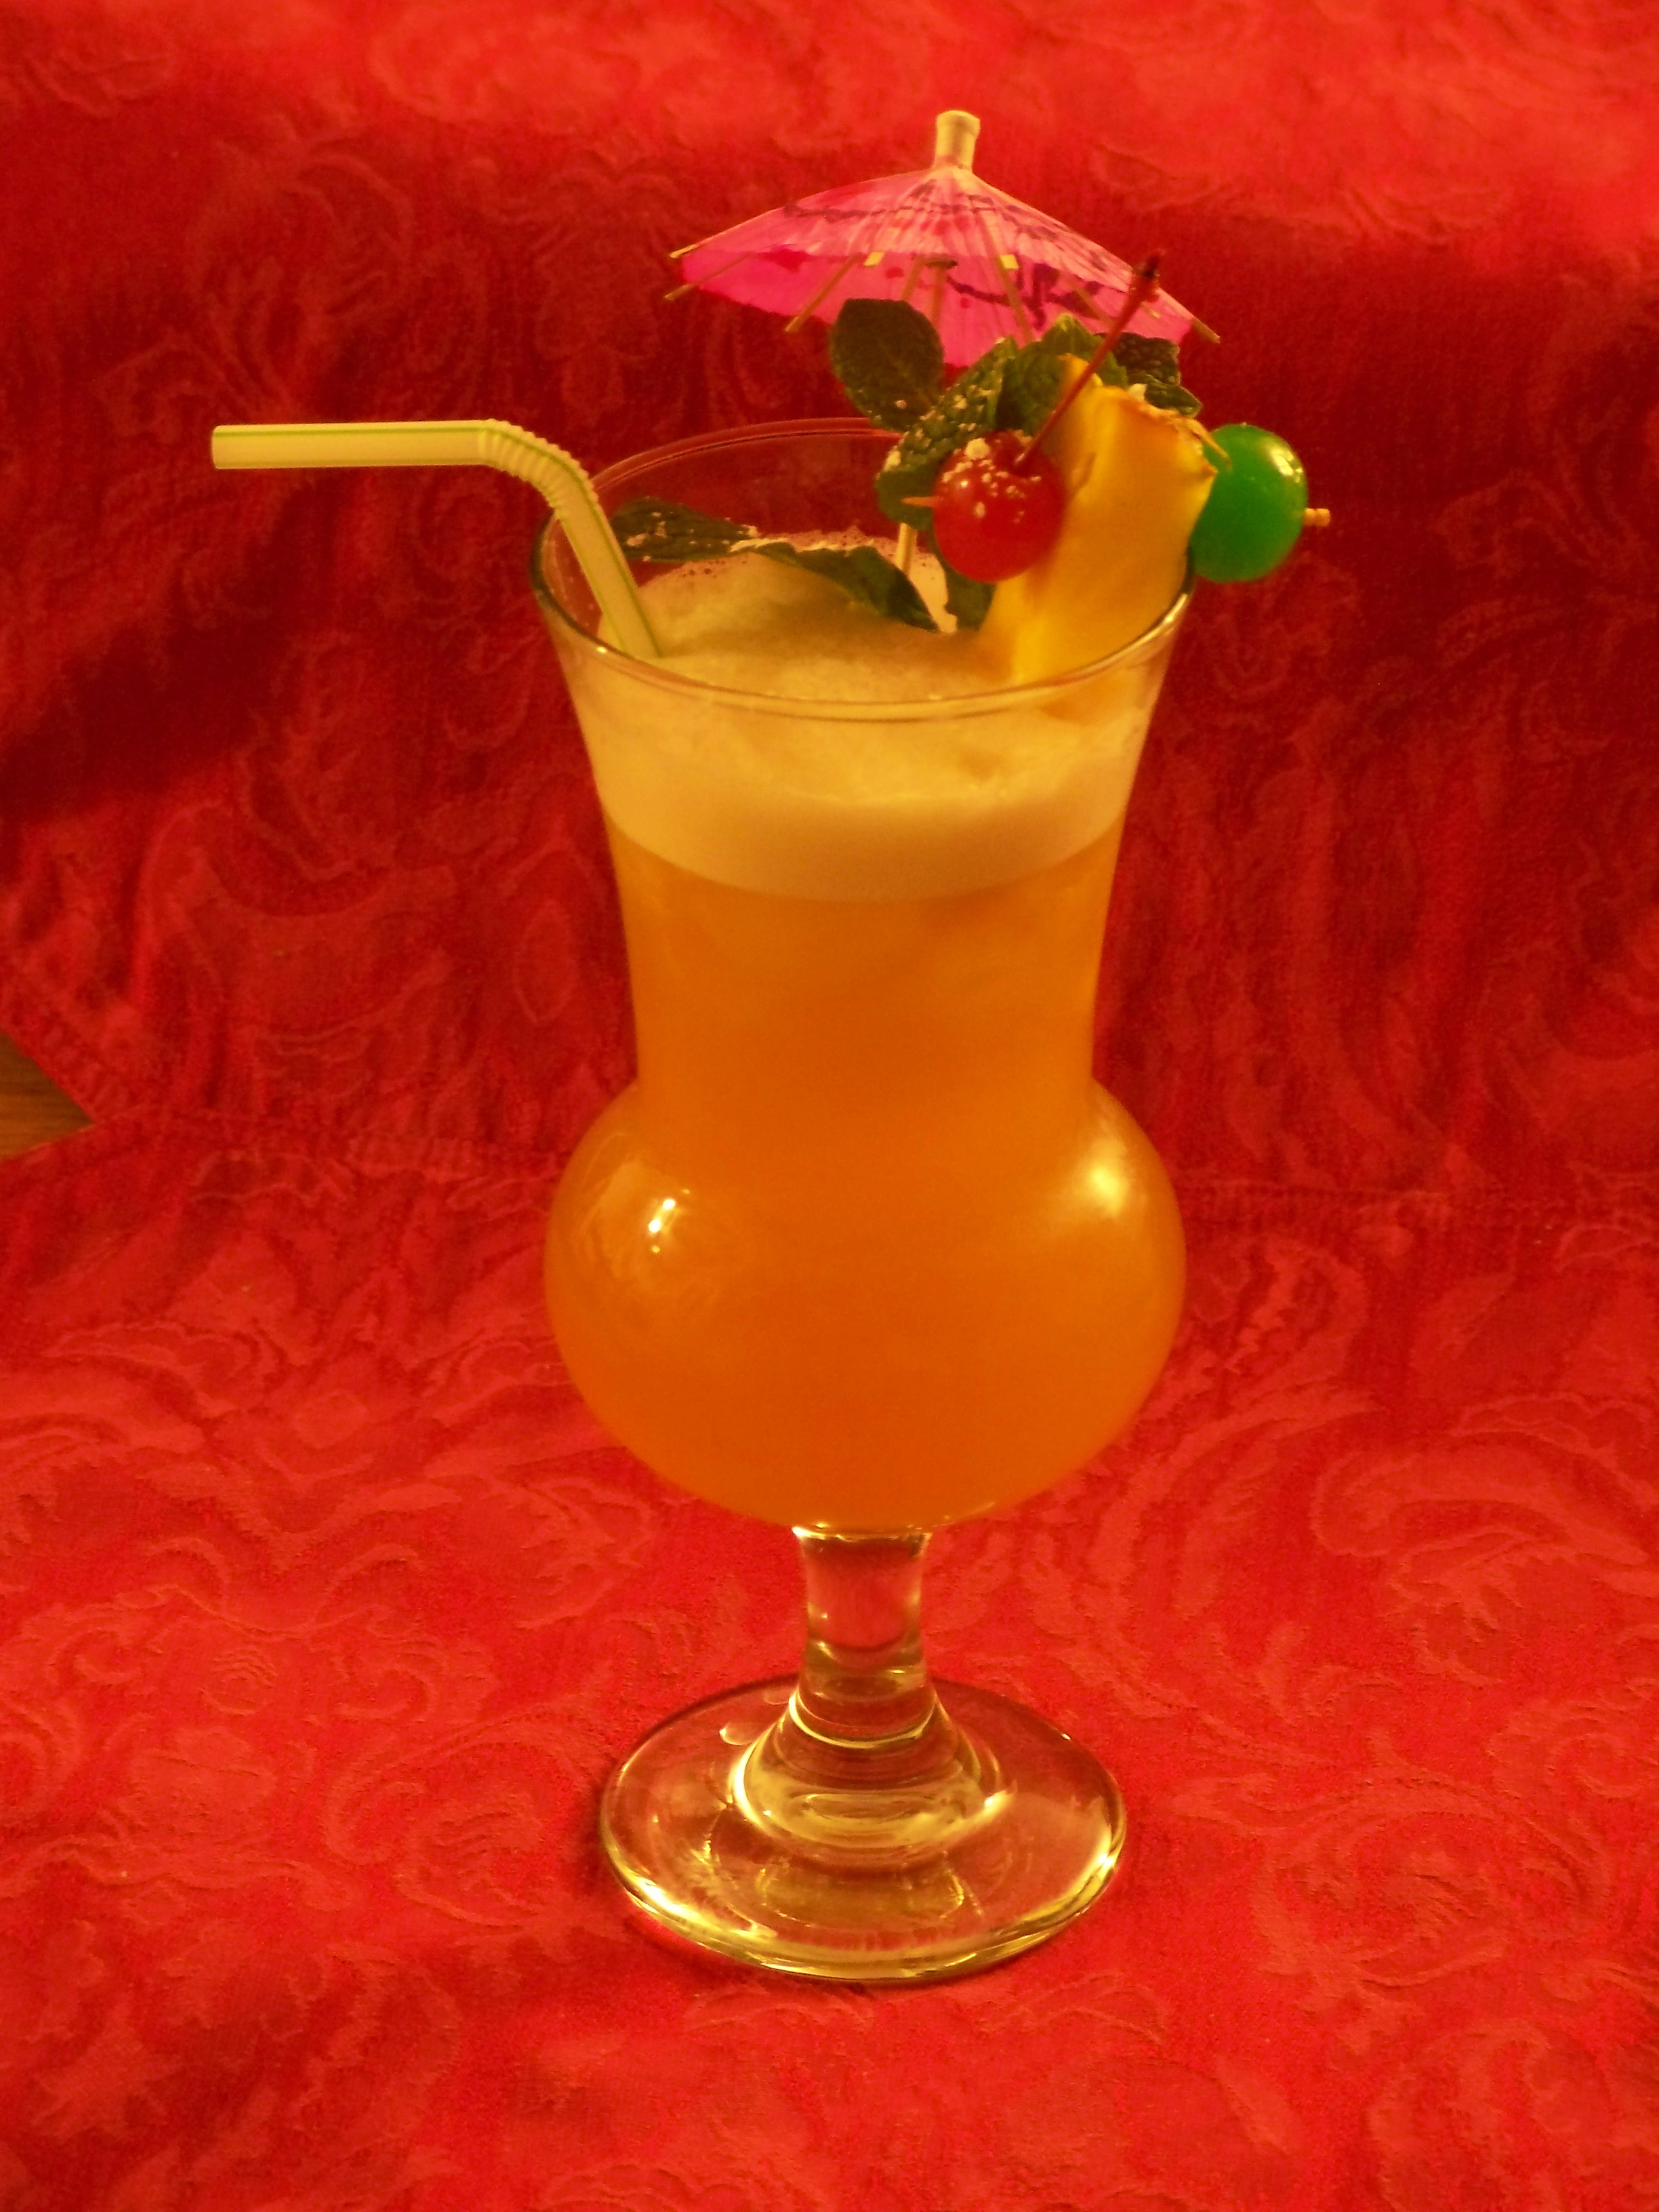 File:Zombiecocktail.jpg - Wikimedia Commons